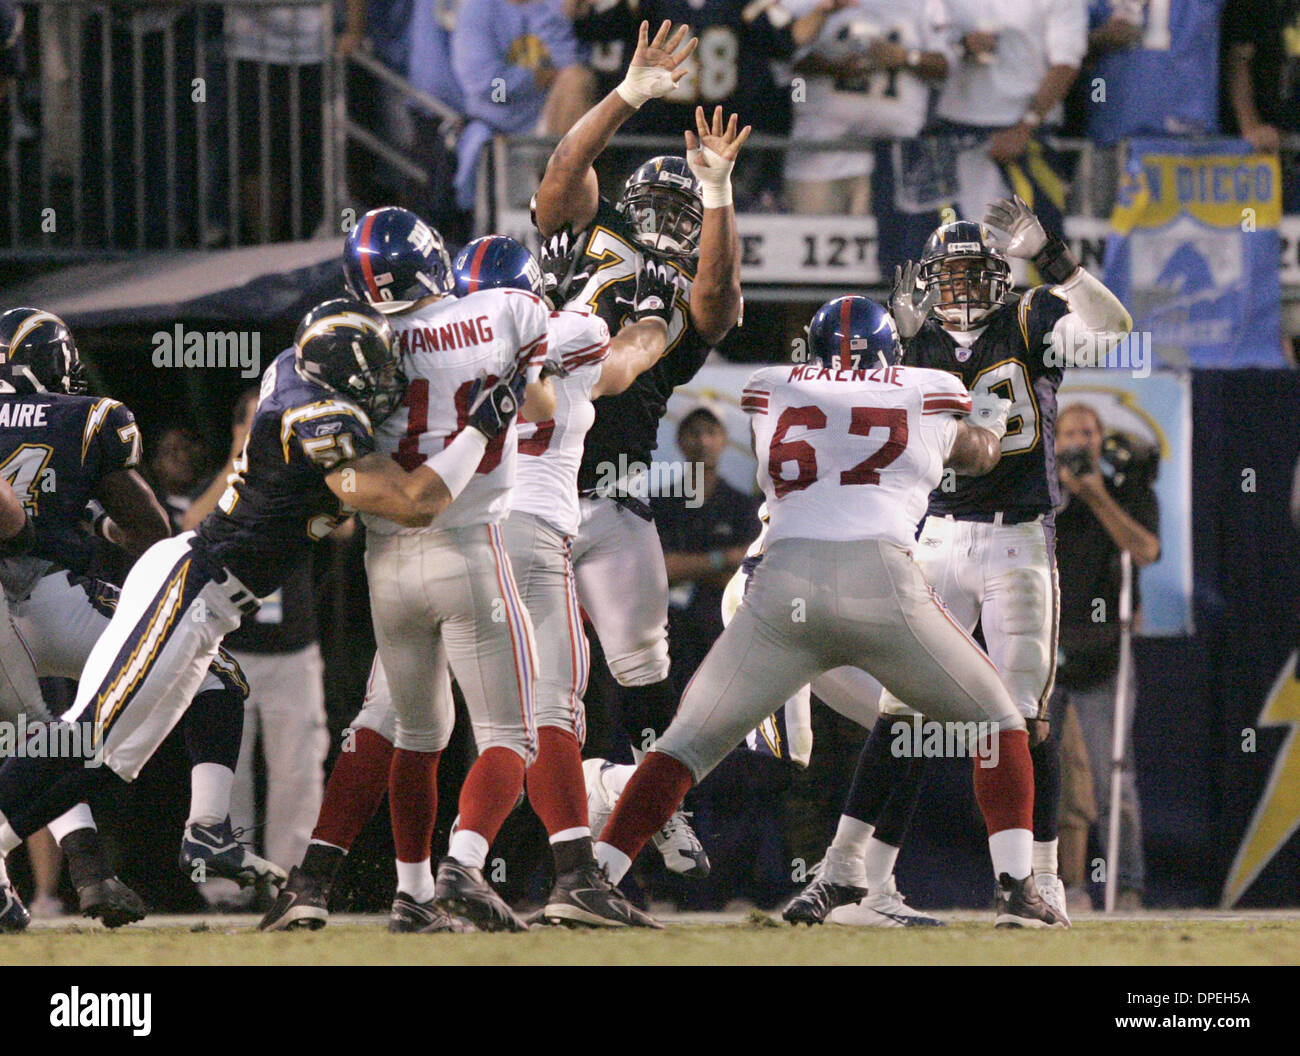 (Published 9/27/2005, Signon)  9/25/2005.Giants QB Eli Manning throws a touchdown pass to Plaxico Burress while Chargers linebacker Ben Leber (left) is called for roughing the passer.UT/DON KOHLBAUER - Stock Image